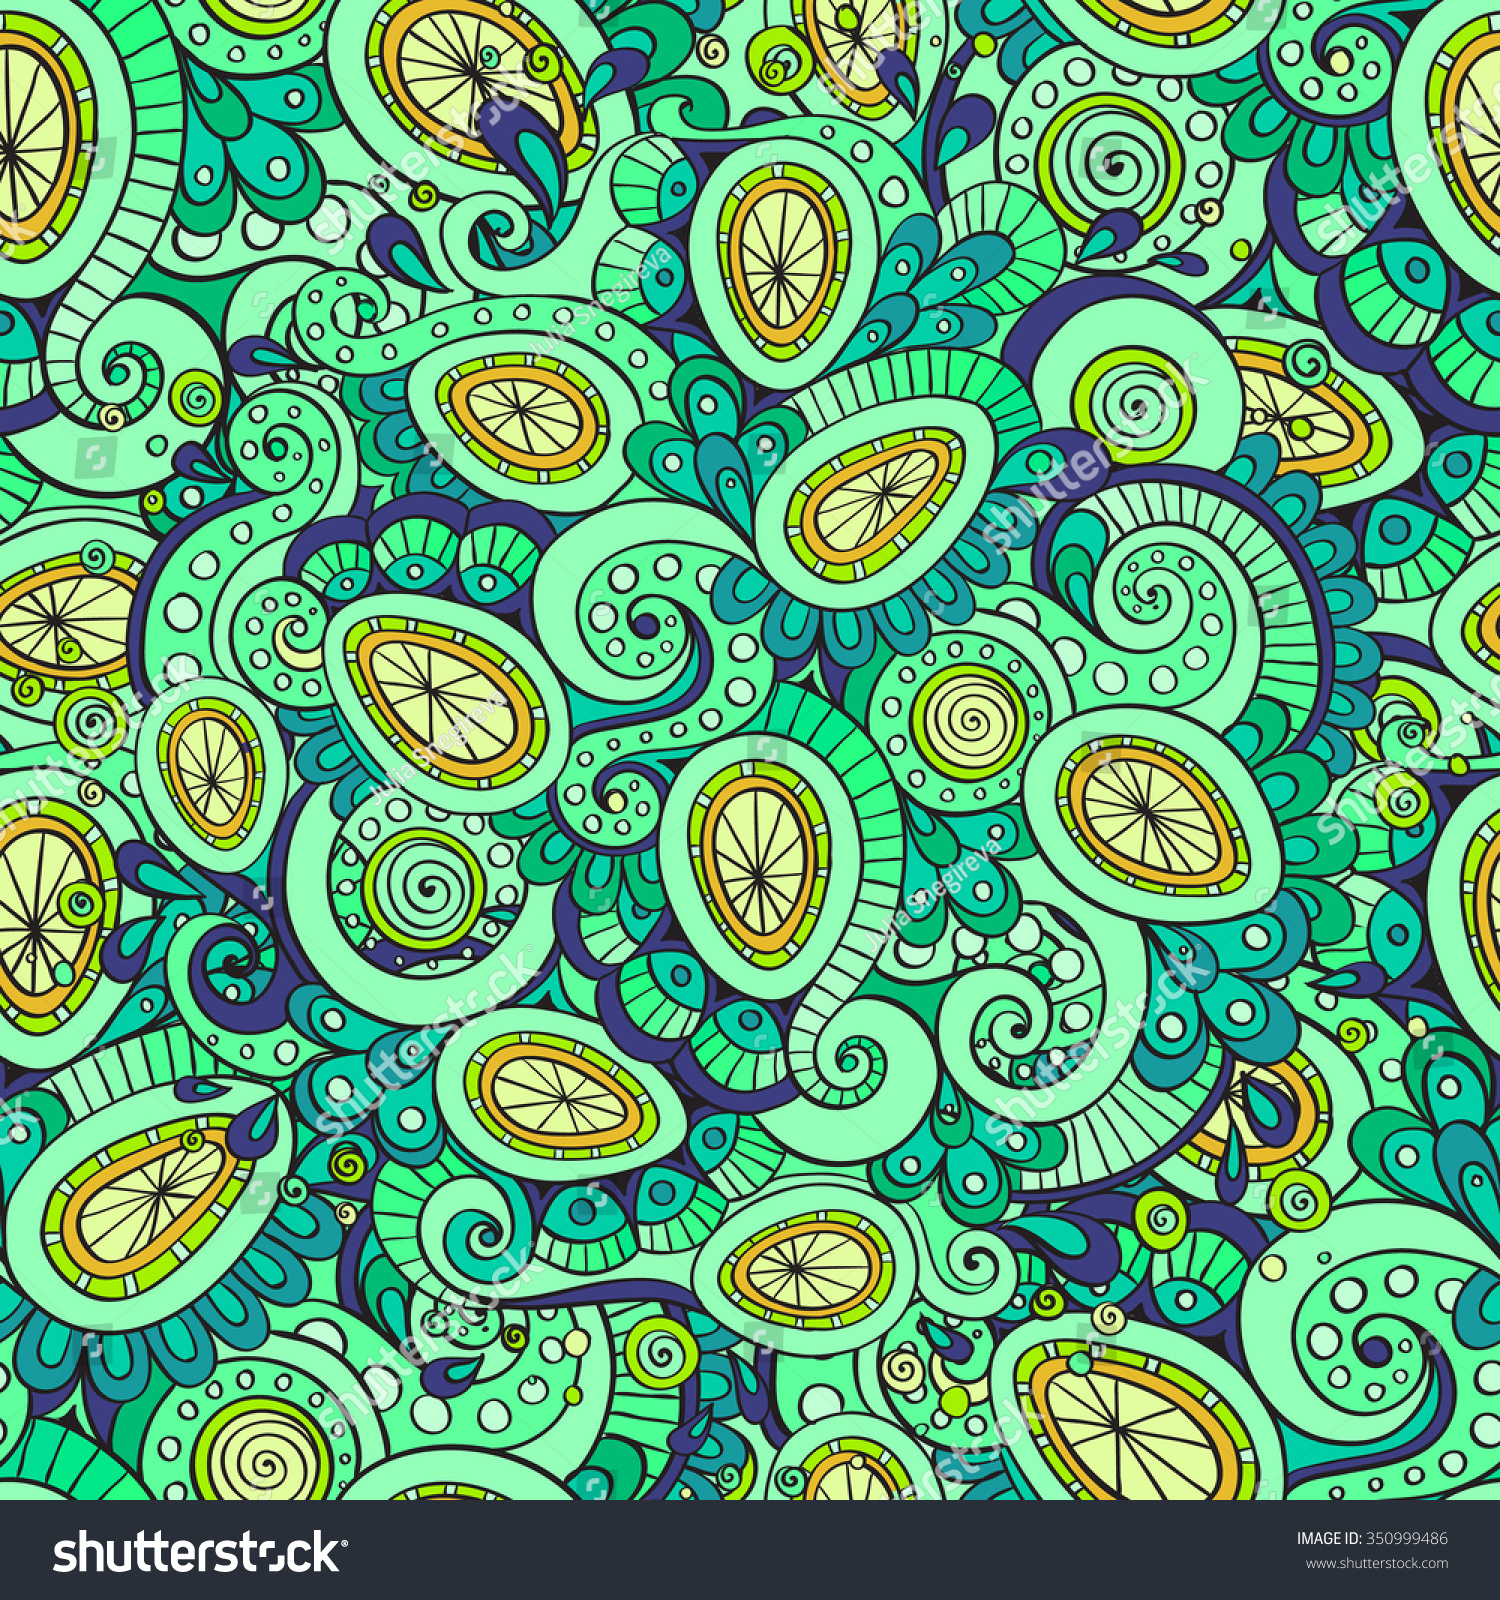 Seamless Ethnic Floral Doodle Colorful Background Stock Vector